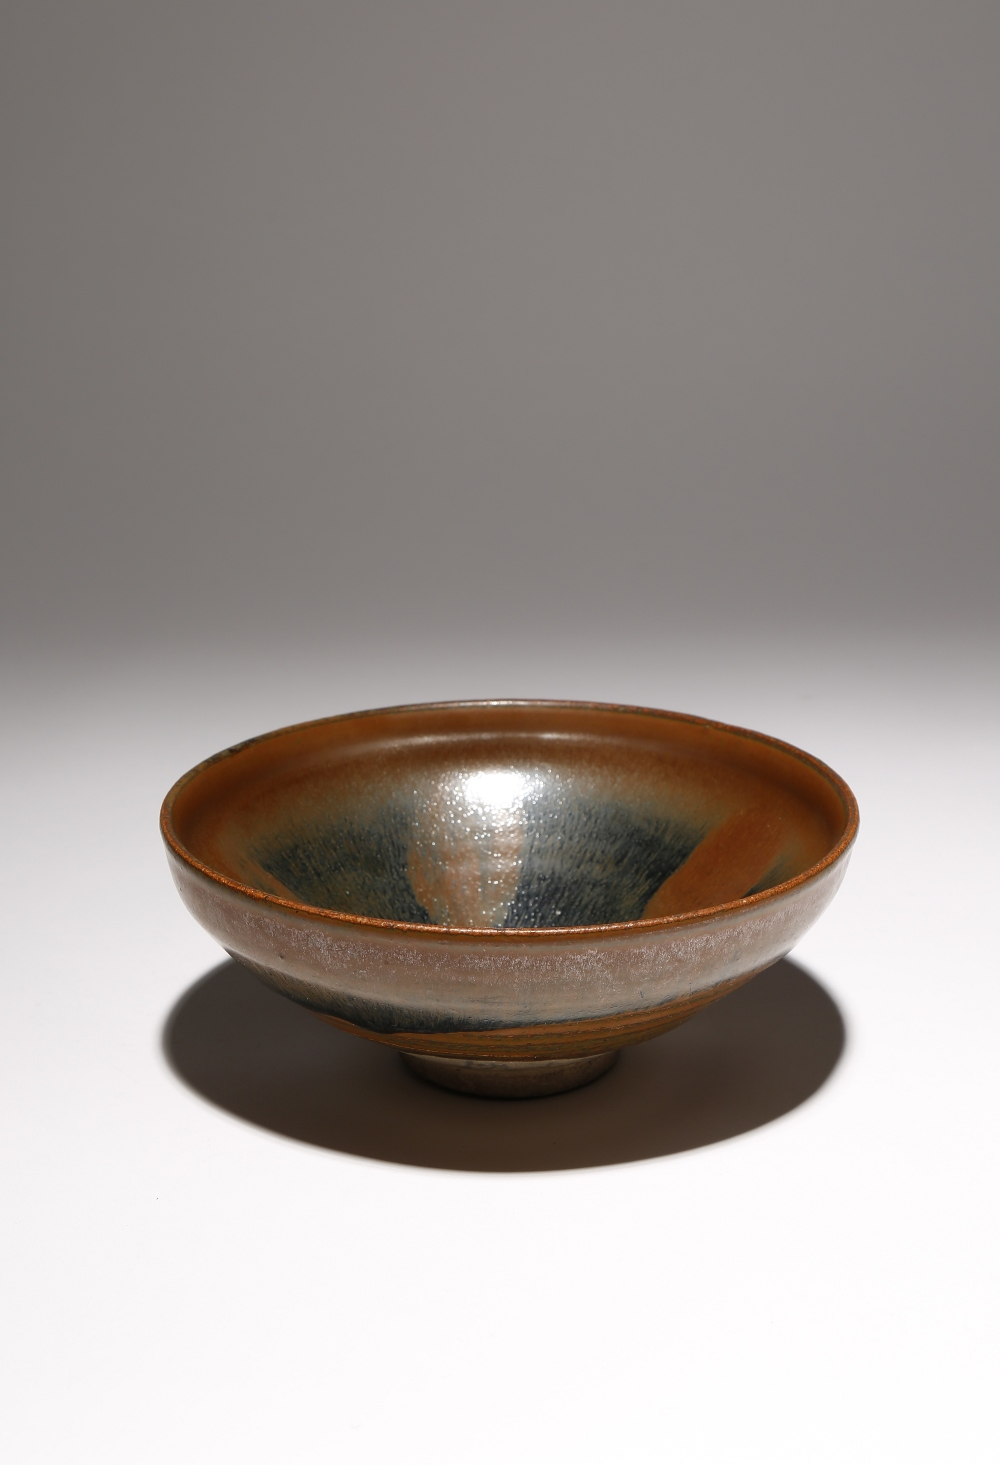 A CHINESE JIAN BOWL SONG DYNASTY Decorated in a 'hare's fur' glaze with brown streaks draining